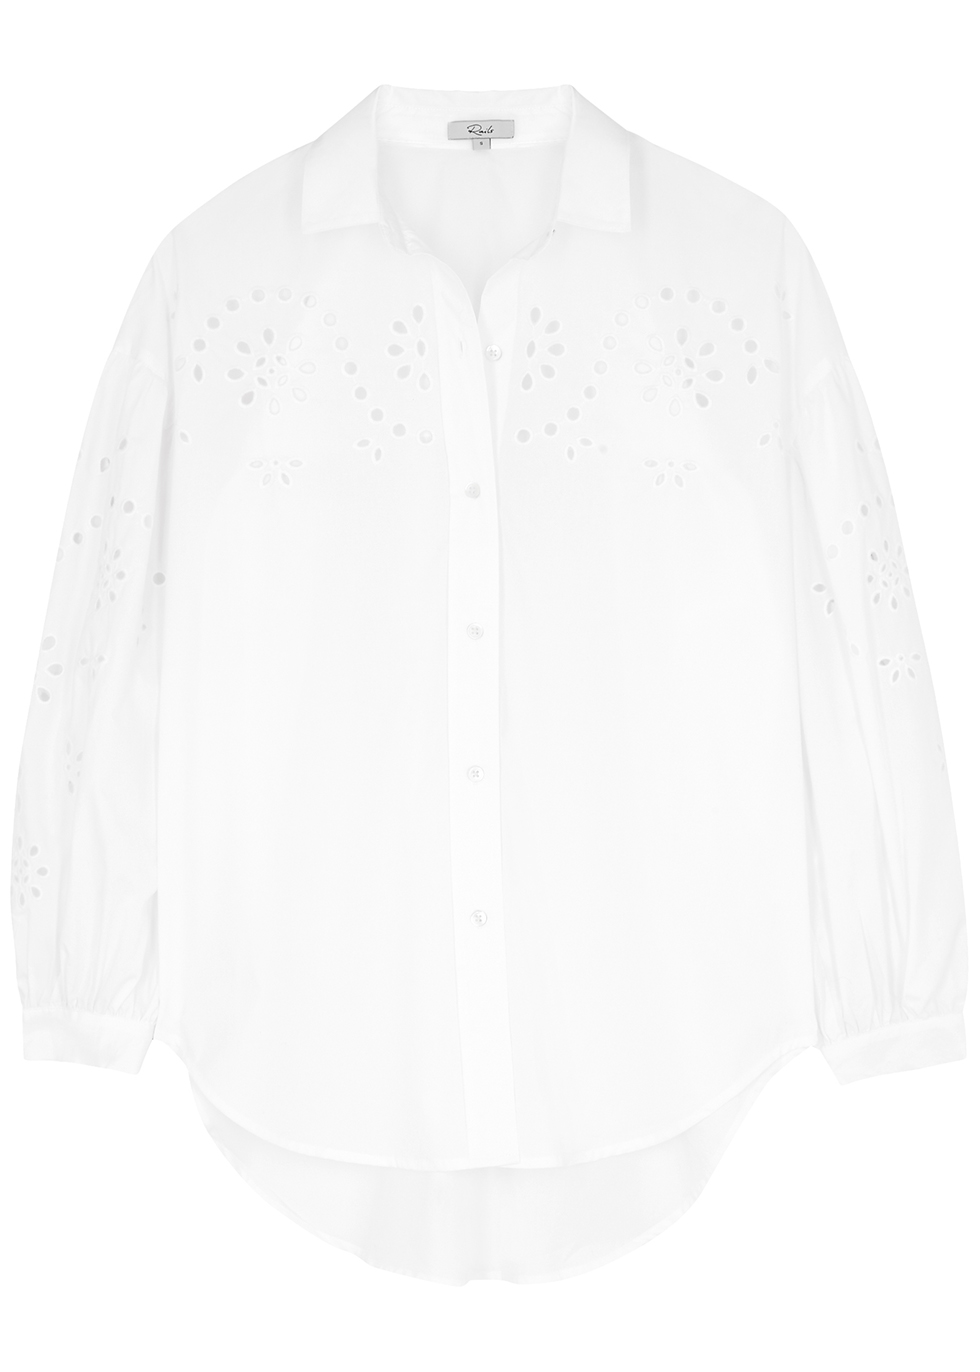 Alister white broderie anglaise shirt